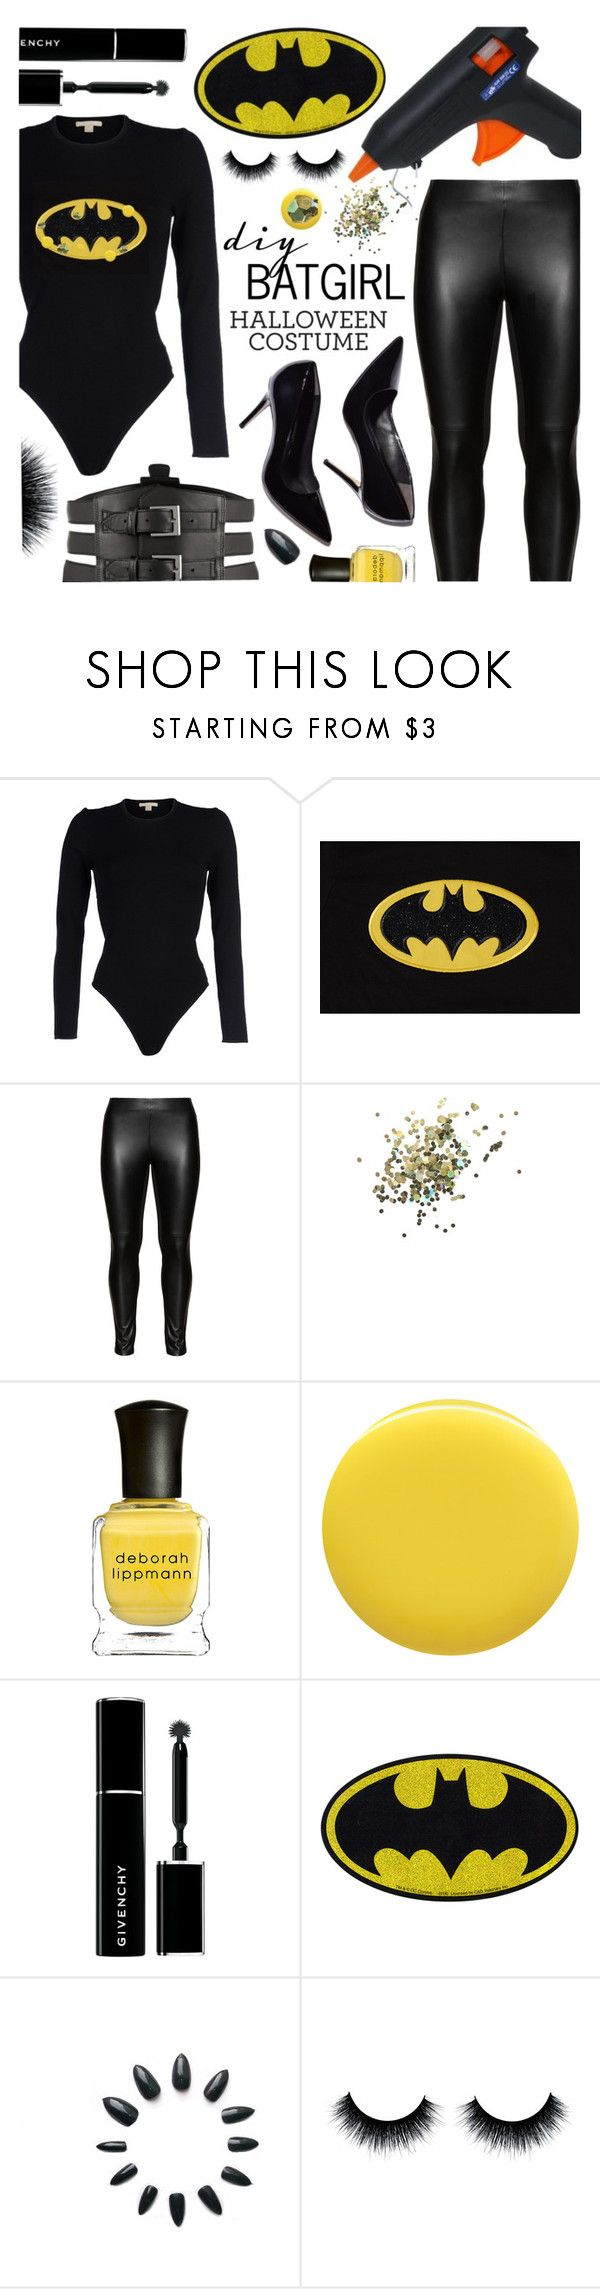 """DIY Batgirl Halloween Costume"" by pastelneon ❤ liked on Polyvore featuring Michael Kors, Studio, Topshop, Deborah Lippmann, Givenchy, Kiki de Montparnasse and plus size clothing"